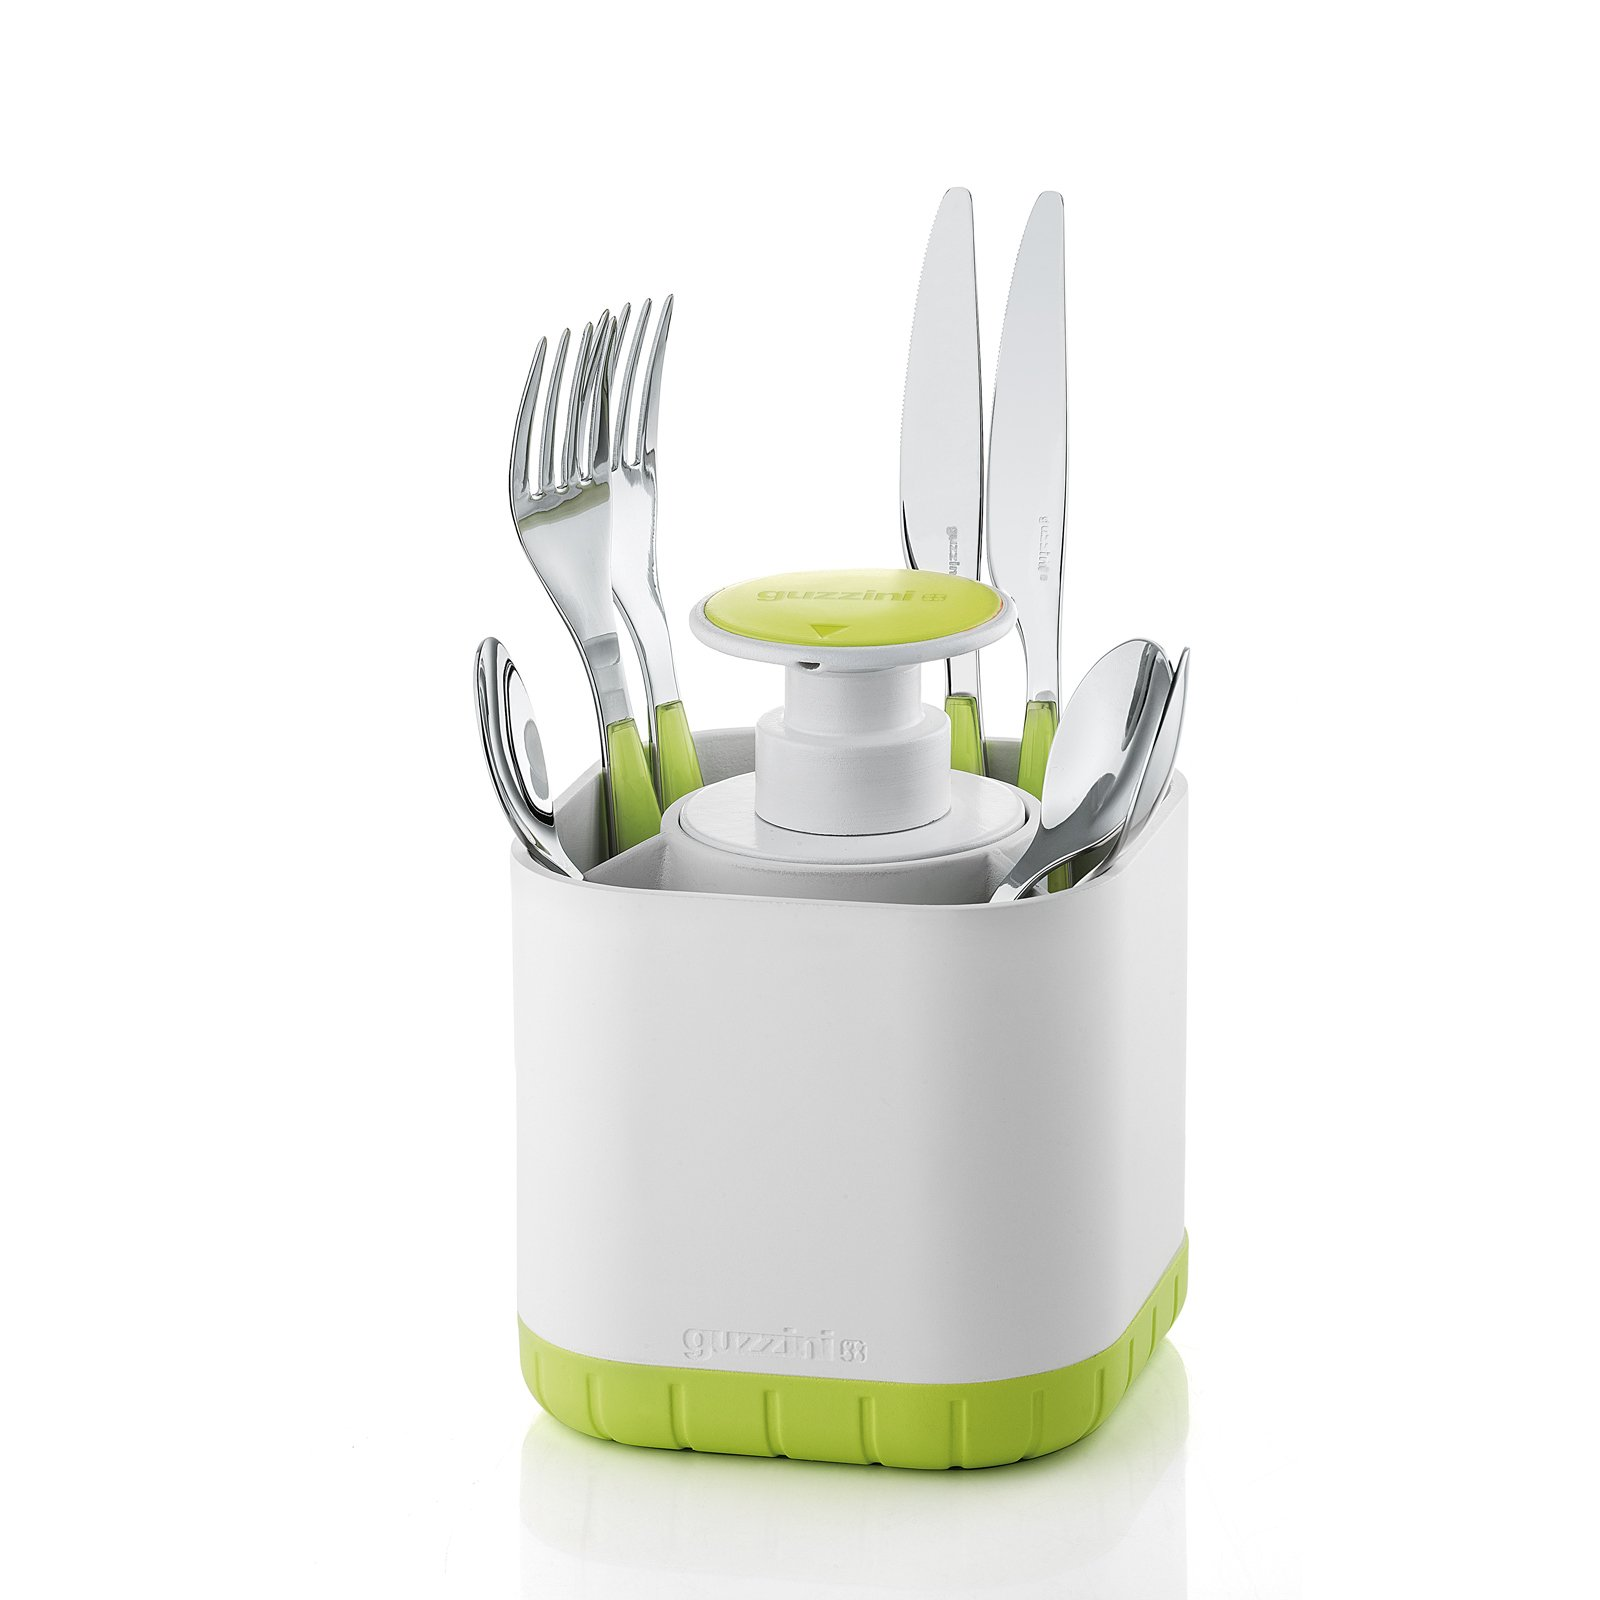 Guzzini My Kitchen Silverware Drainer Caddy with Removable Soap Dispenser, 7-Inches, 9-3/4-Ounces, Apple Green